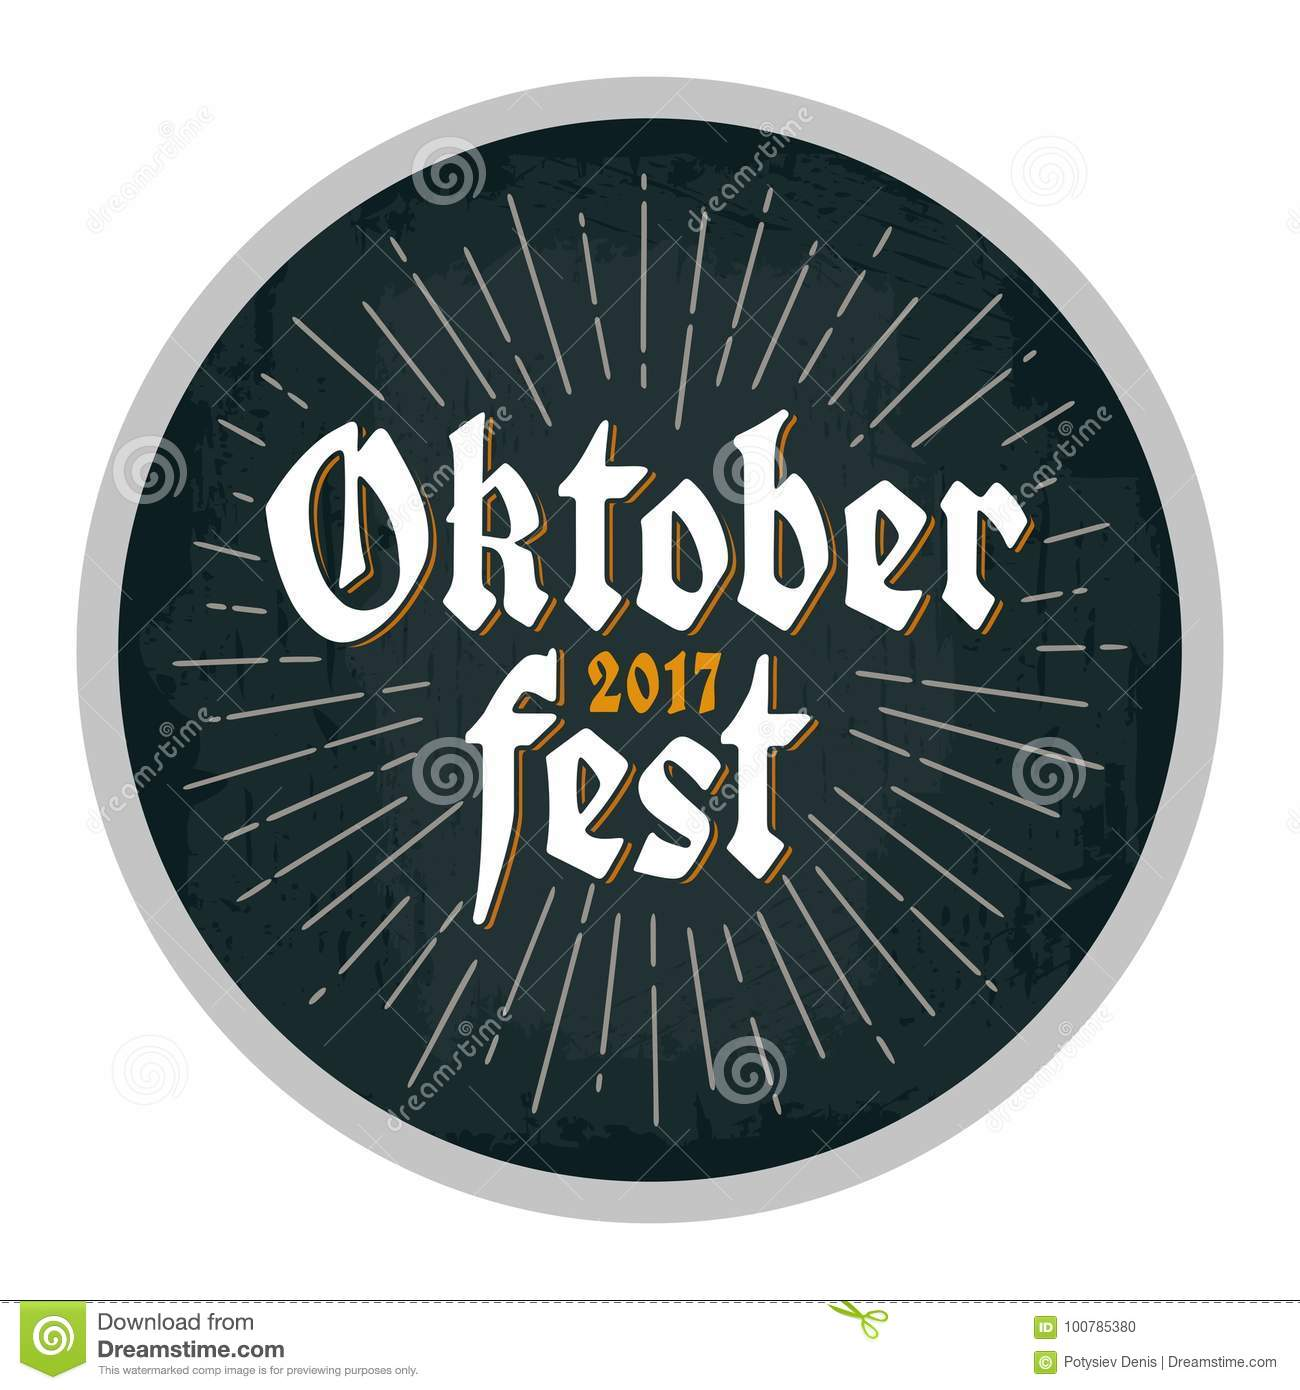 Advertising design for coaster. Oktoberfest 2017 lettering with rays.